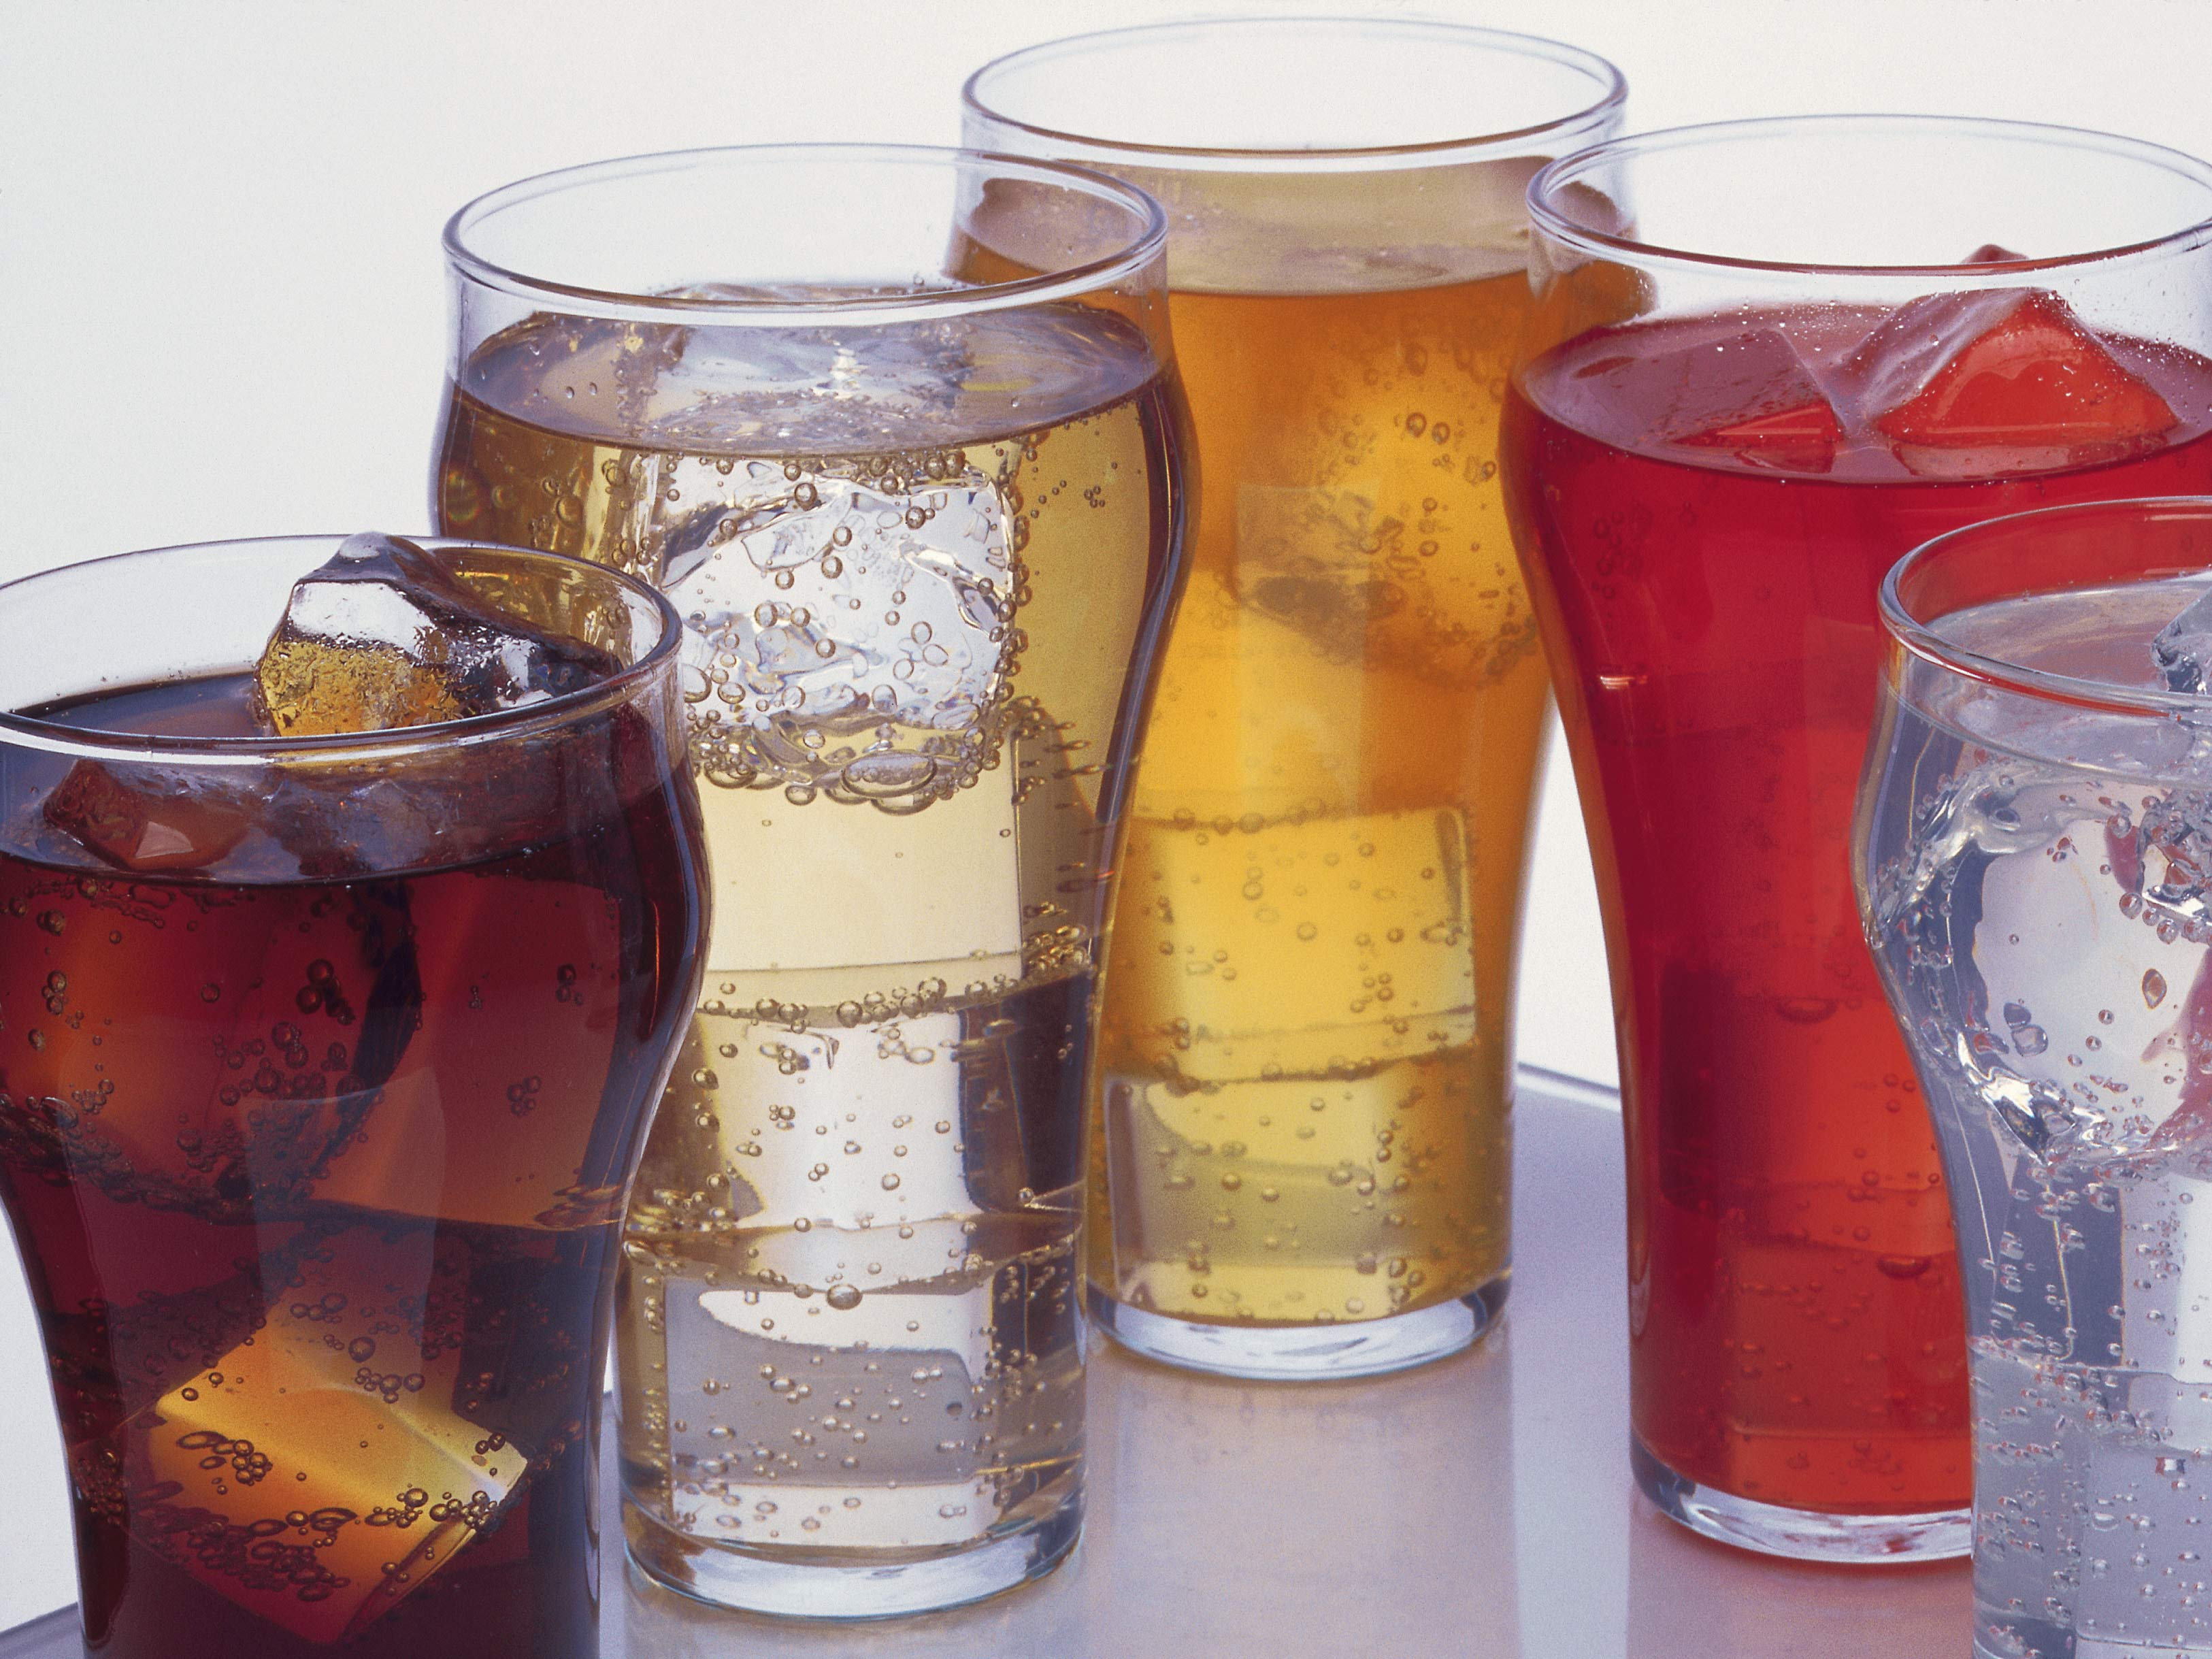 The 'bad' and 'good' beverages